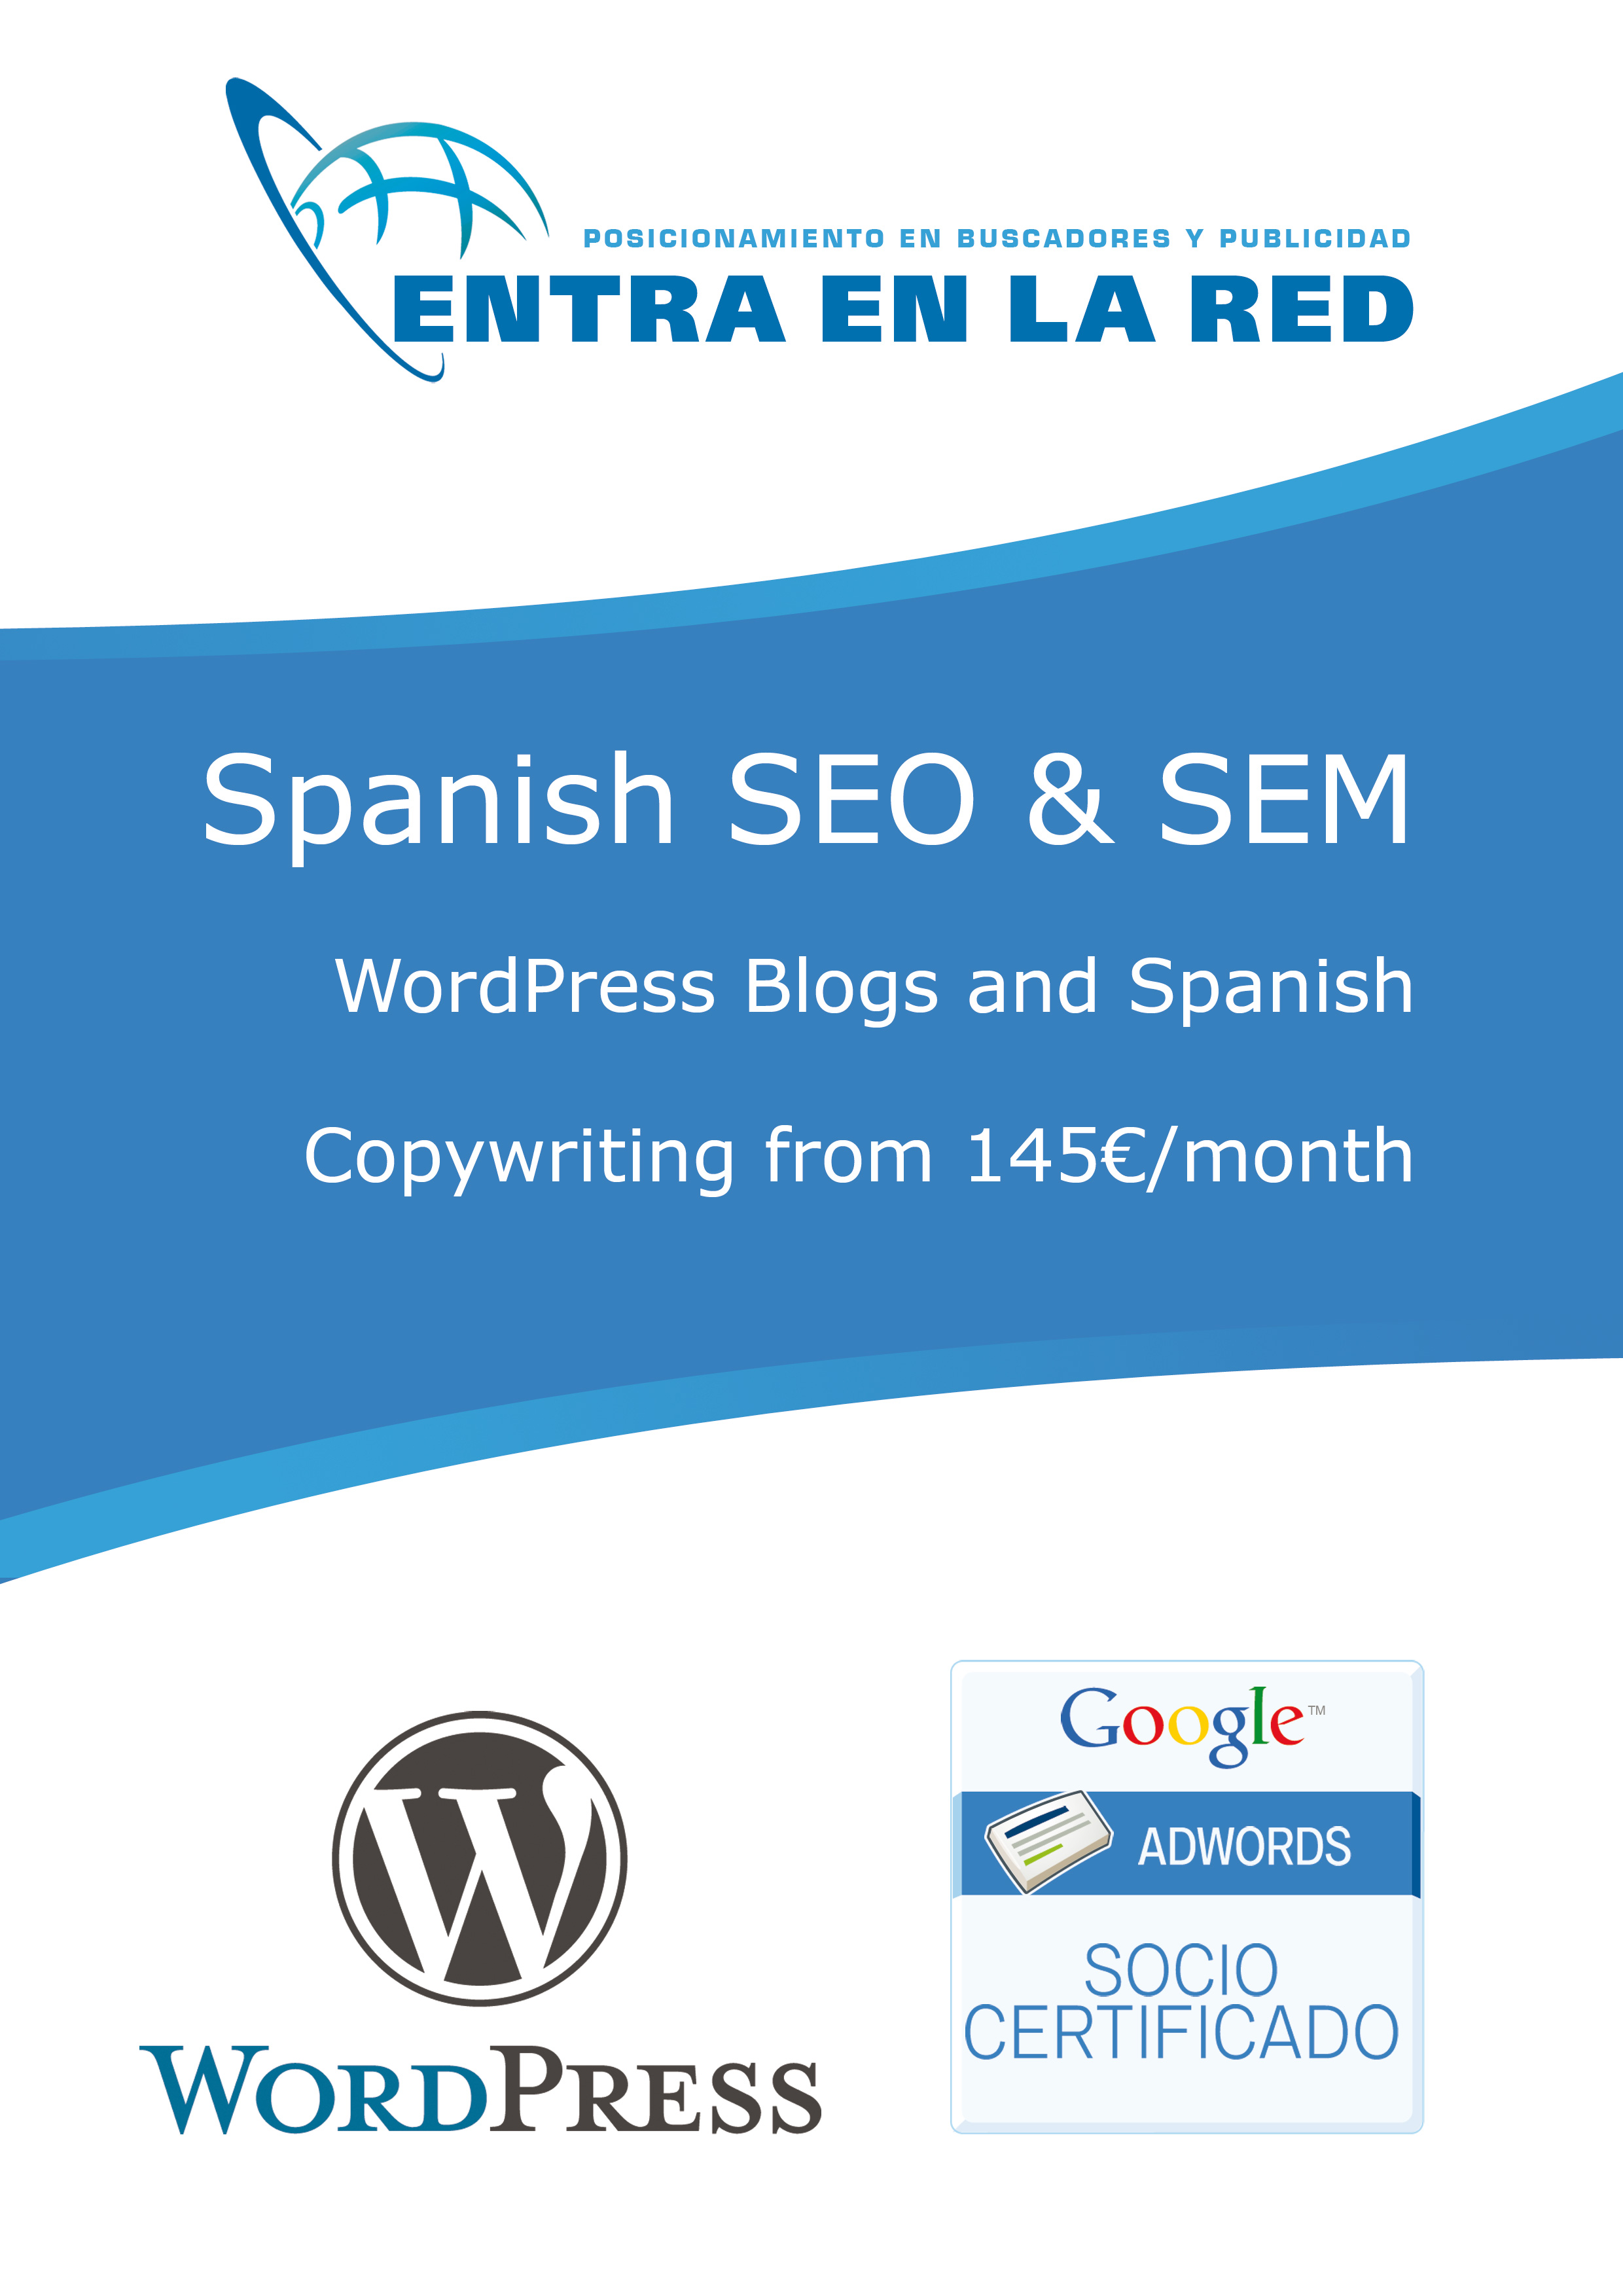 Spanish SEM and WordPress Blogs for SEO